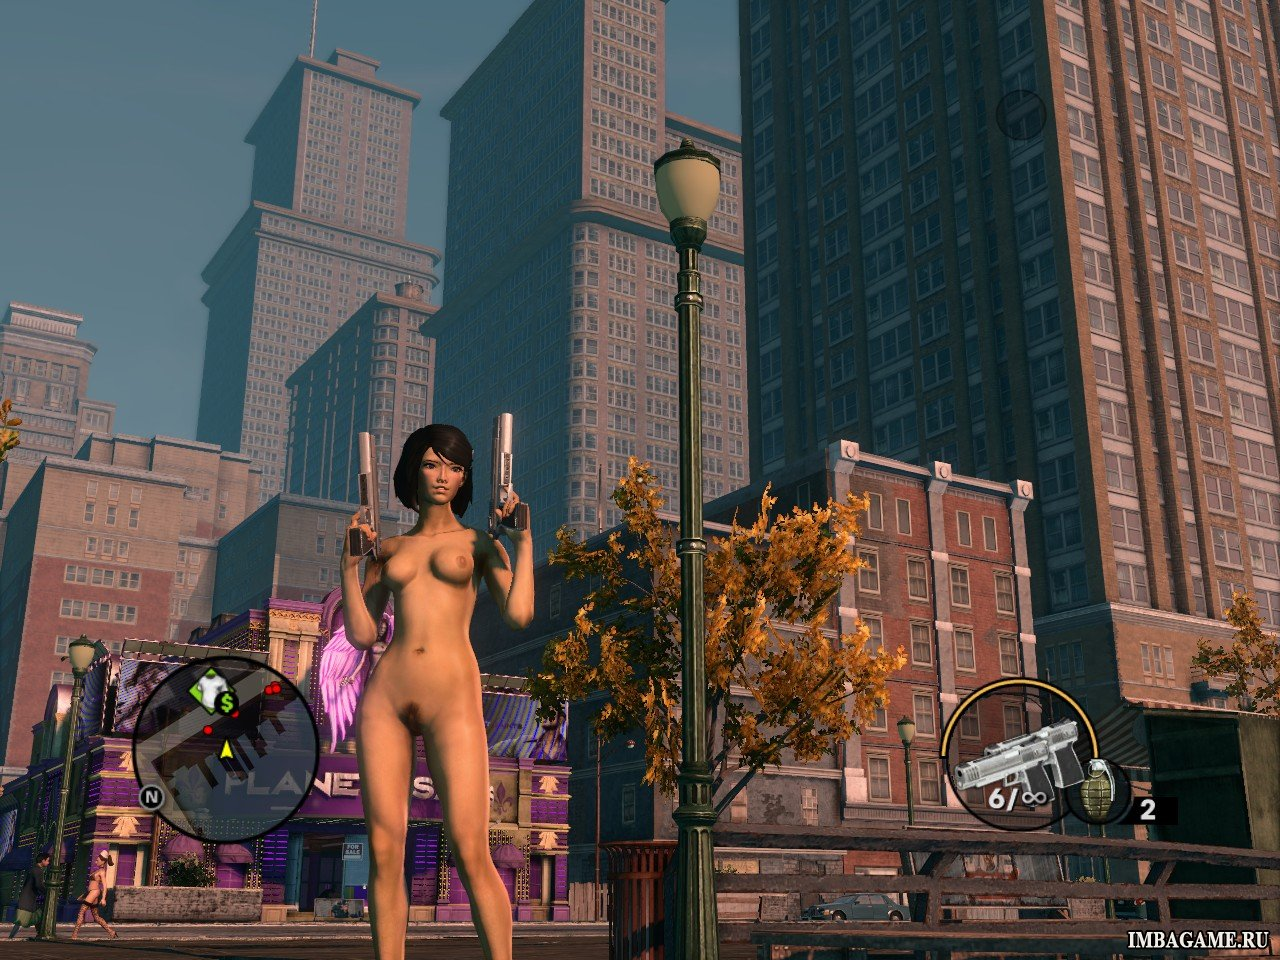 Saints row 4 male nudity patch smut scene